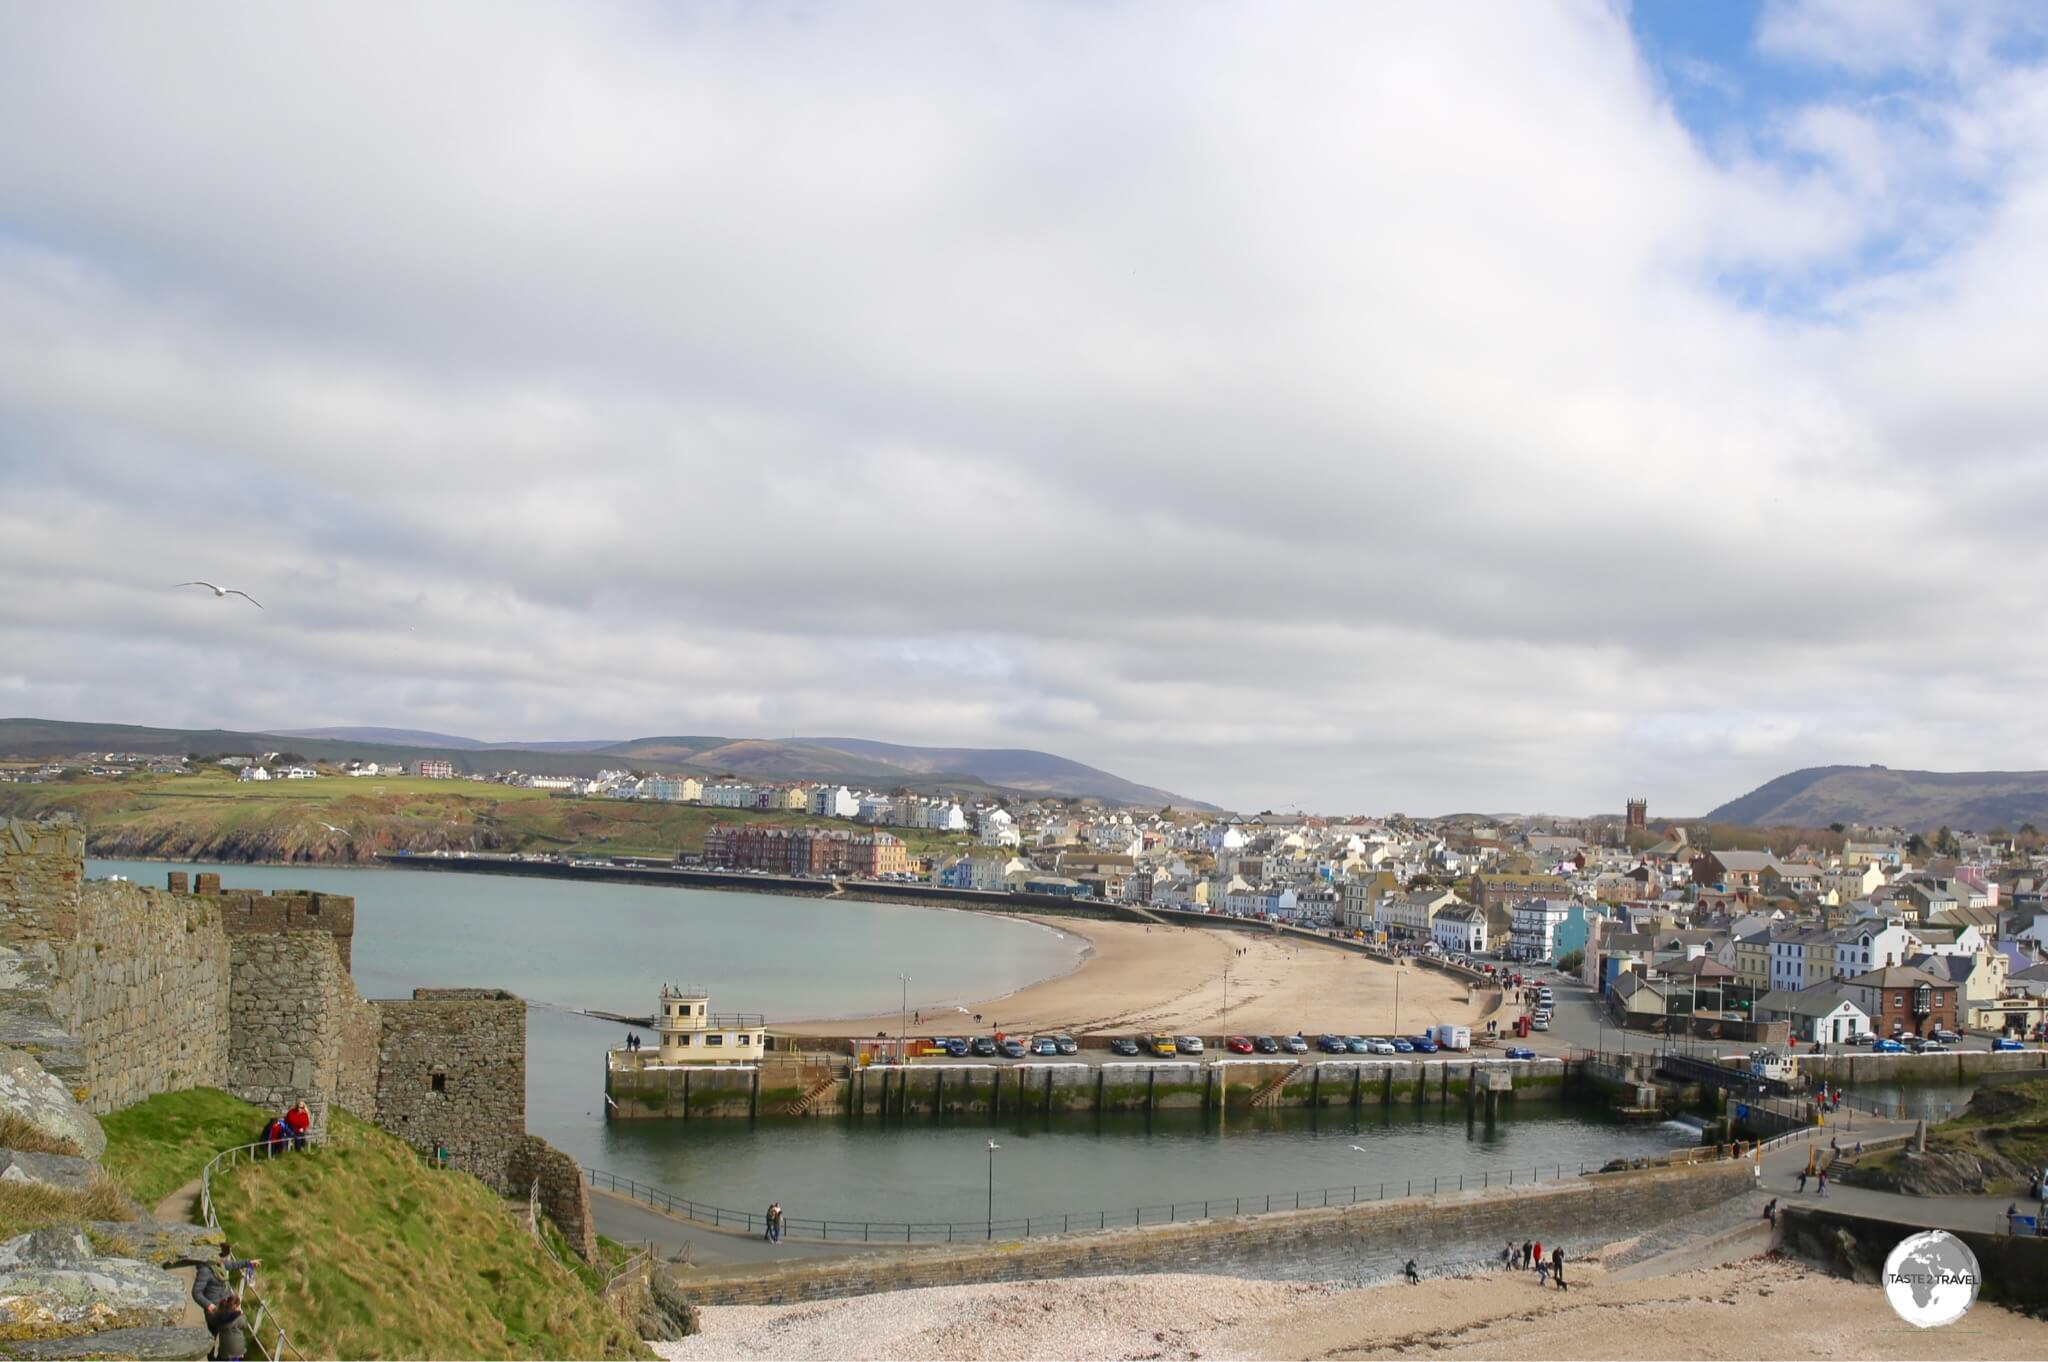 The view of Peel from Peel castle.